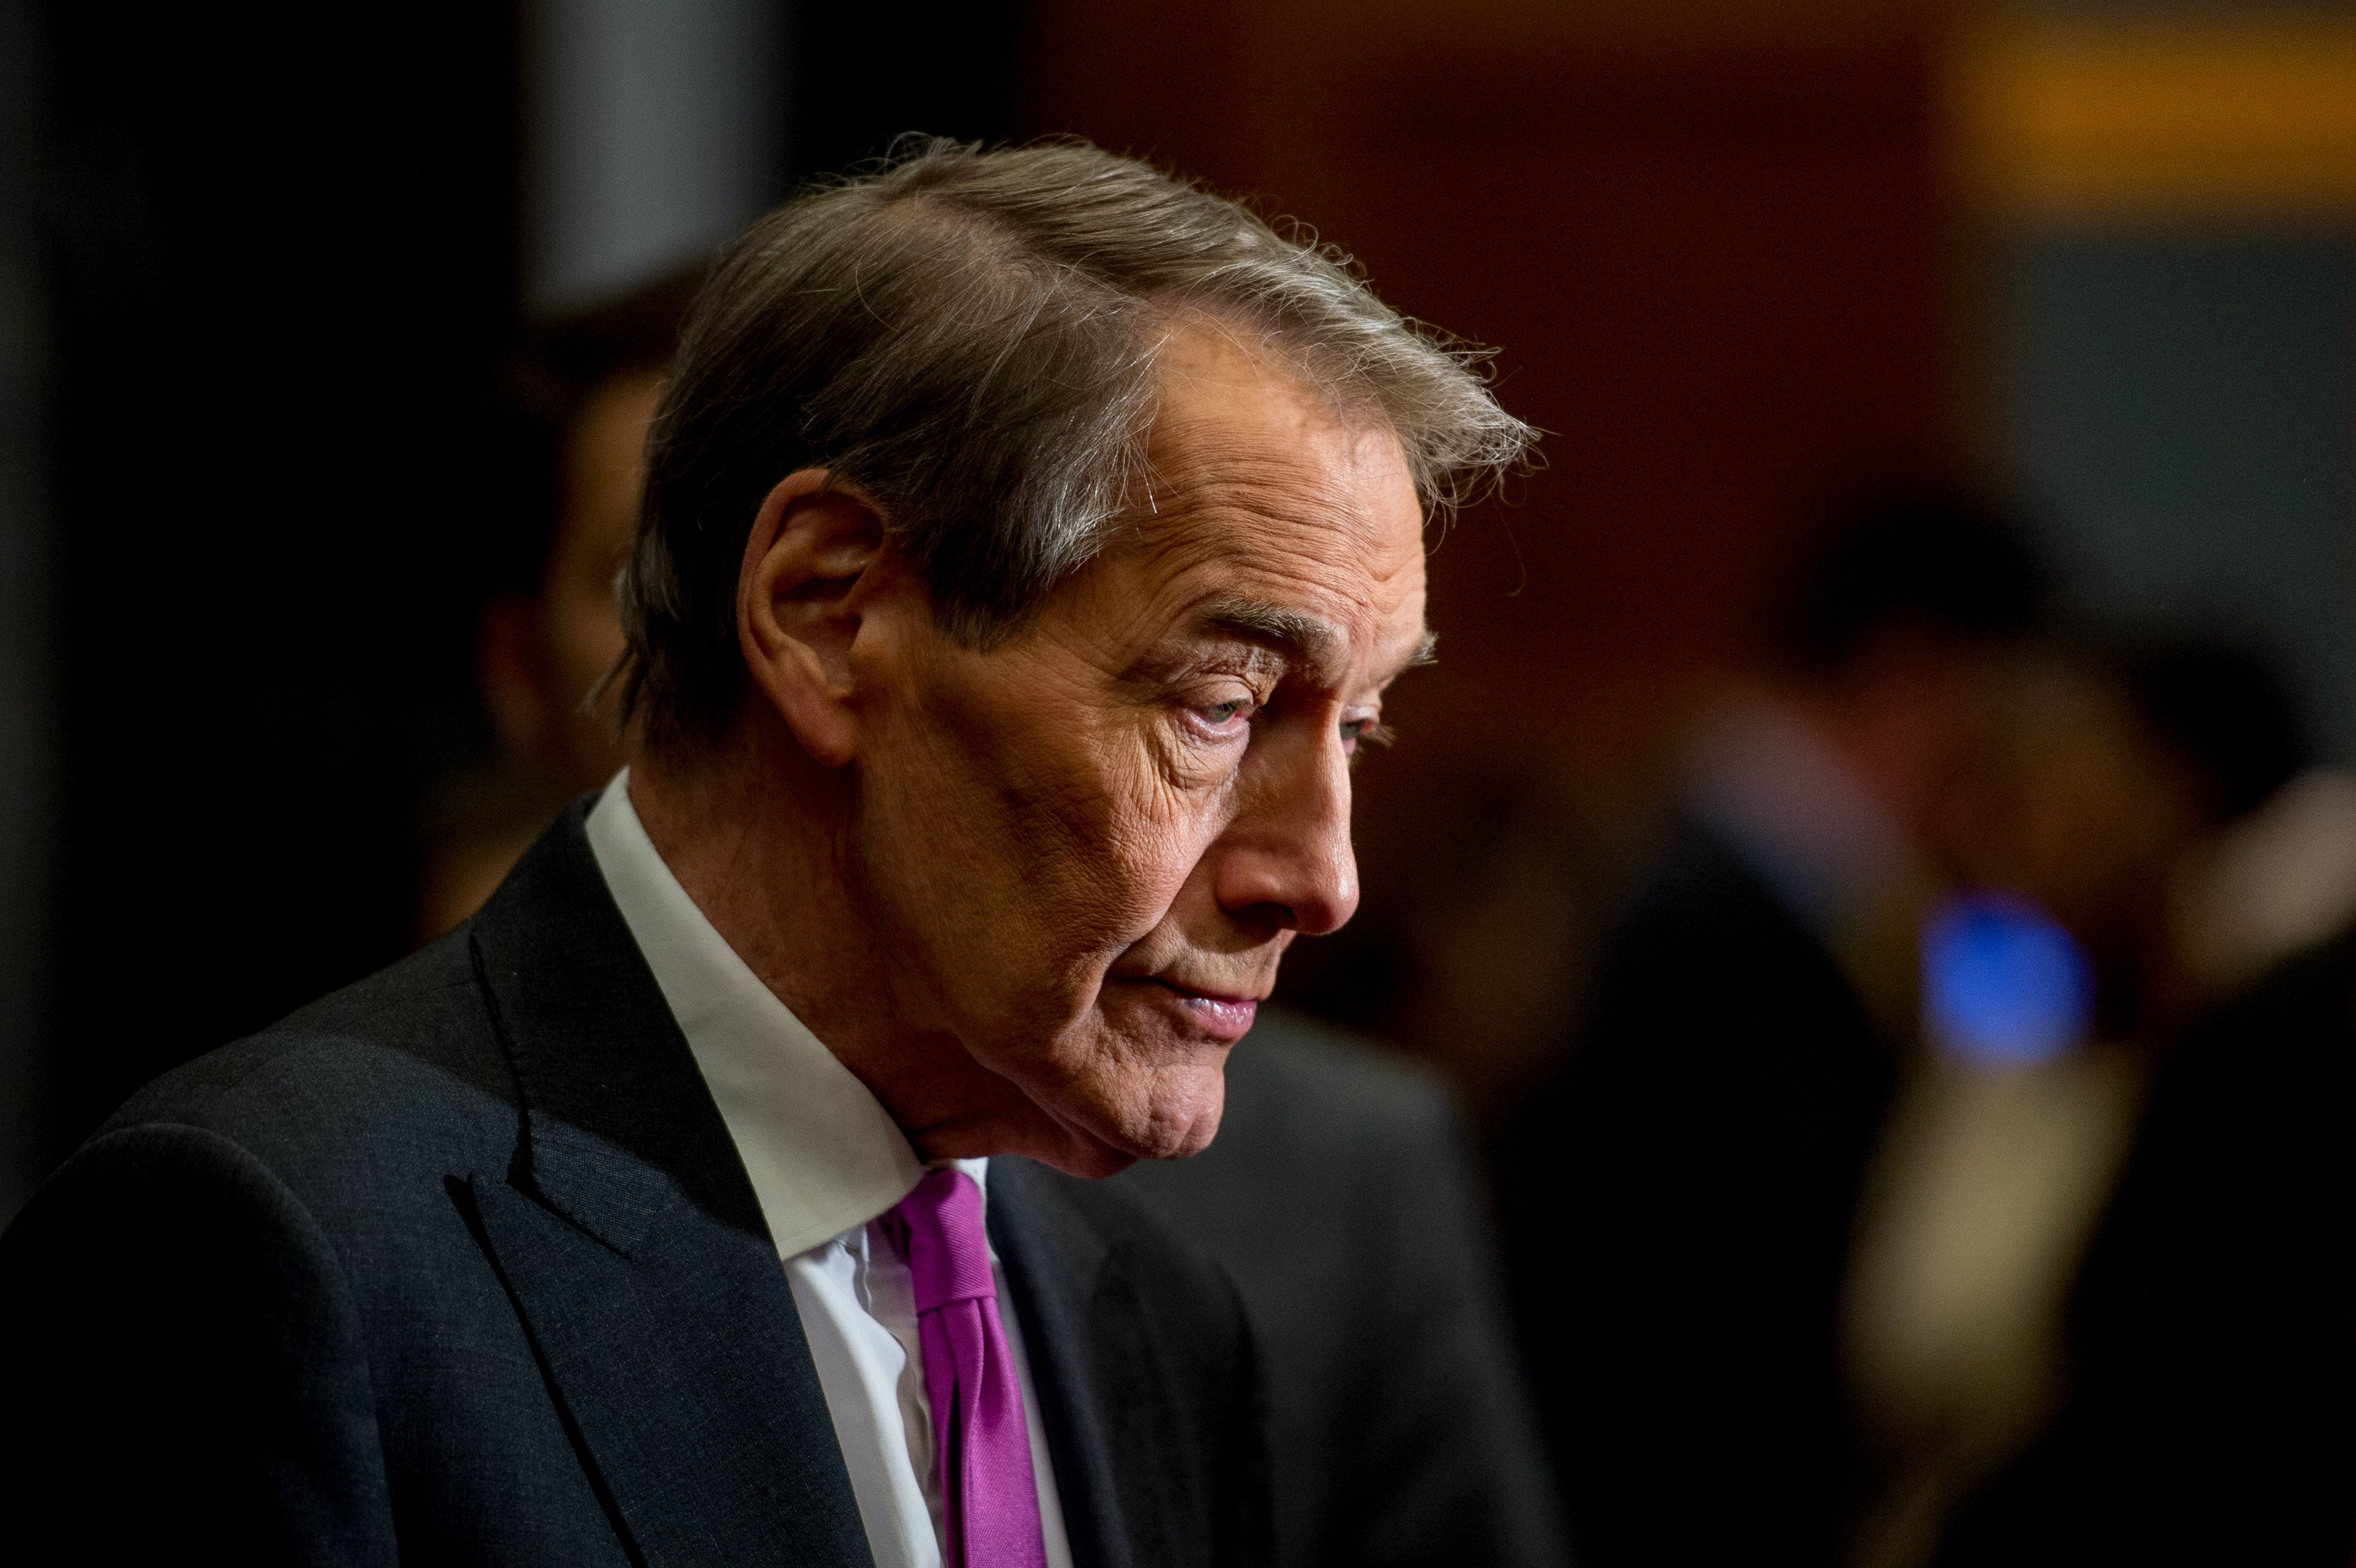 Charlie rose sexual misconduct